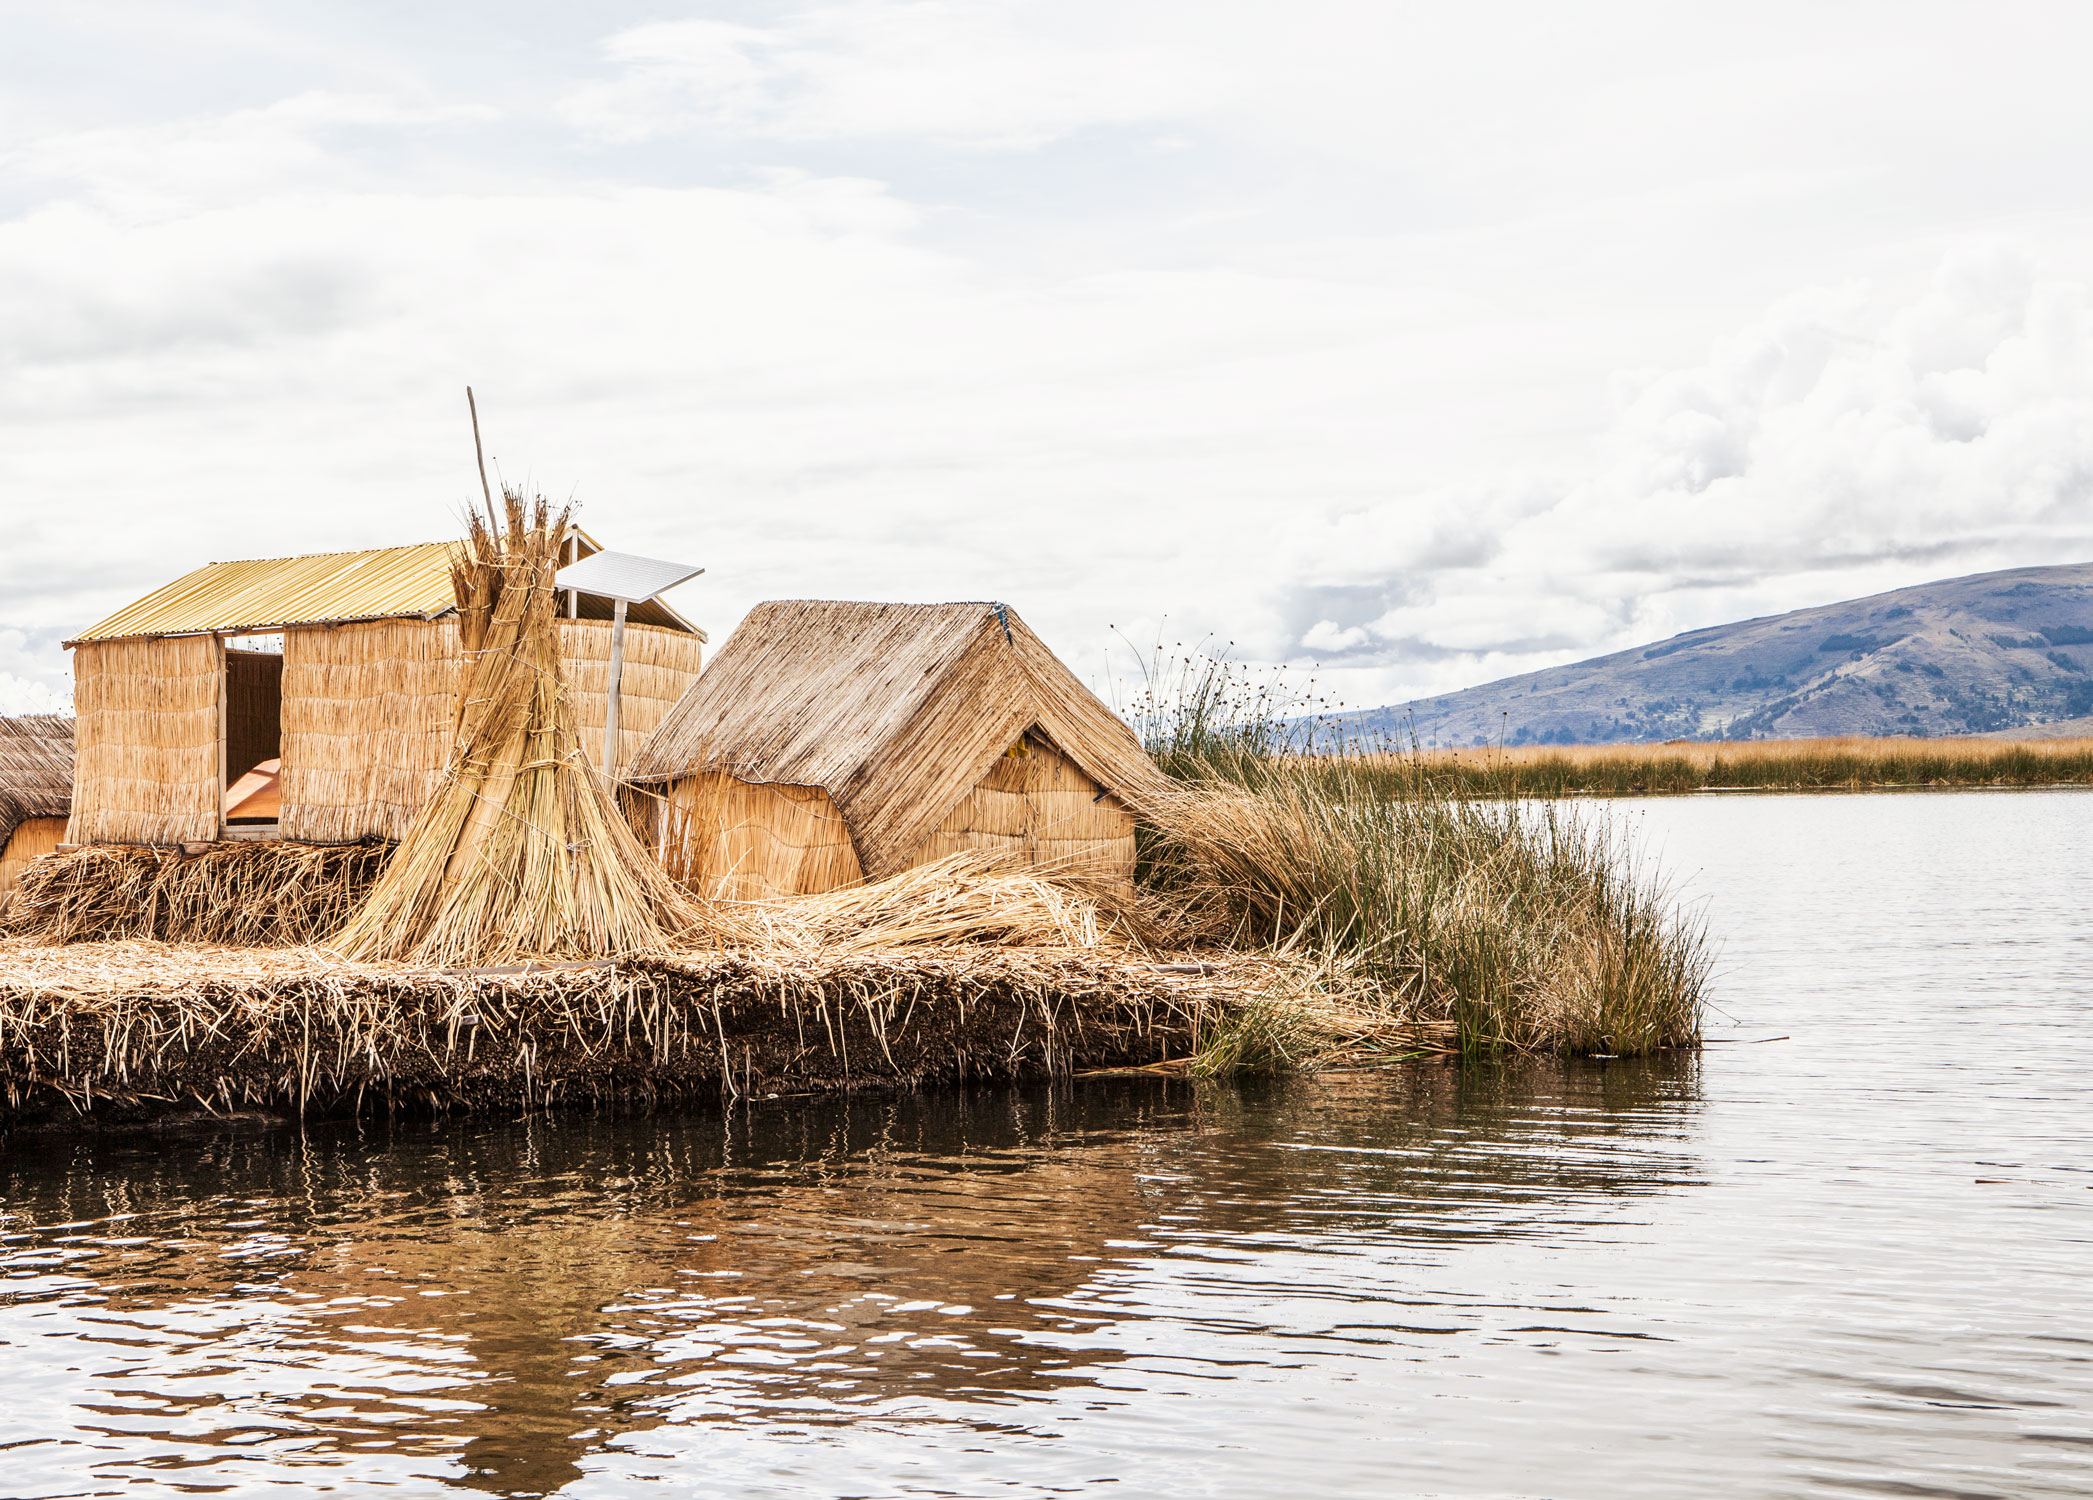 lake-titicaca-puno-peru-wander-south-reed-island.jpg